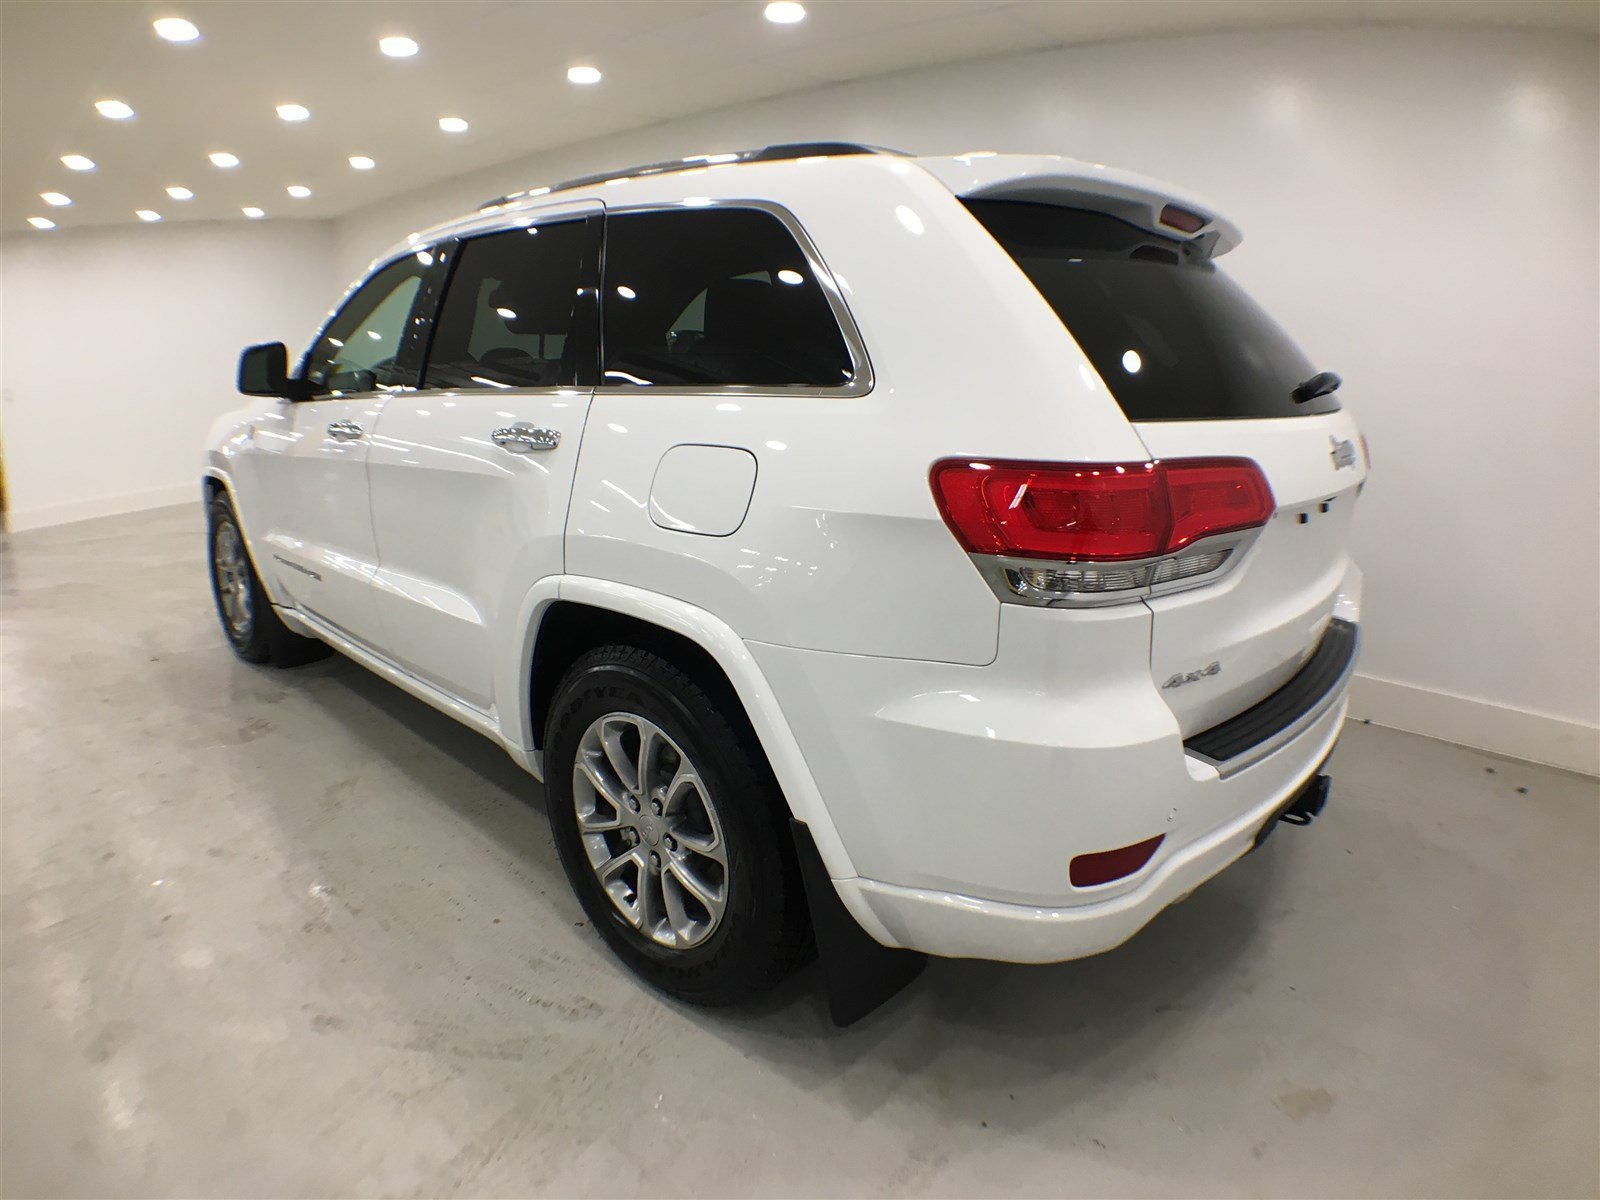 new 2016 jeep grand cherokee overland sunroof navigation sport utility near moose jaw 16jgc39. Black Bedroom Furniture Sets. Home Design Ideas